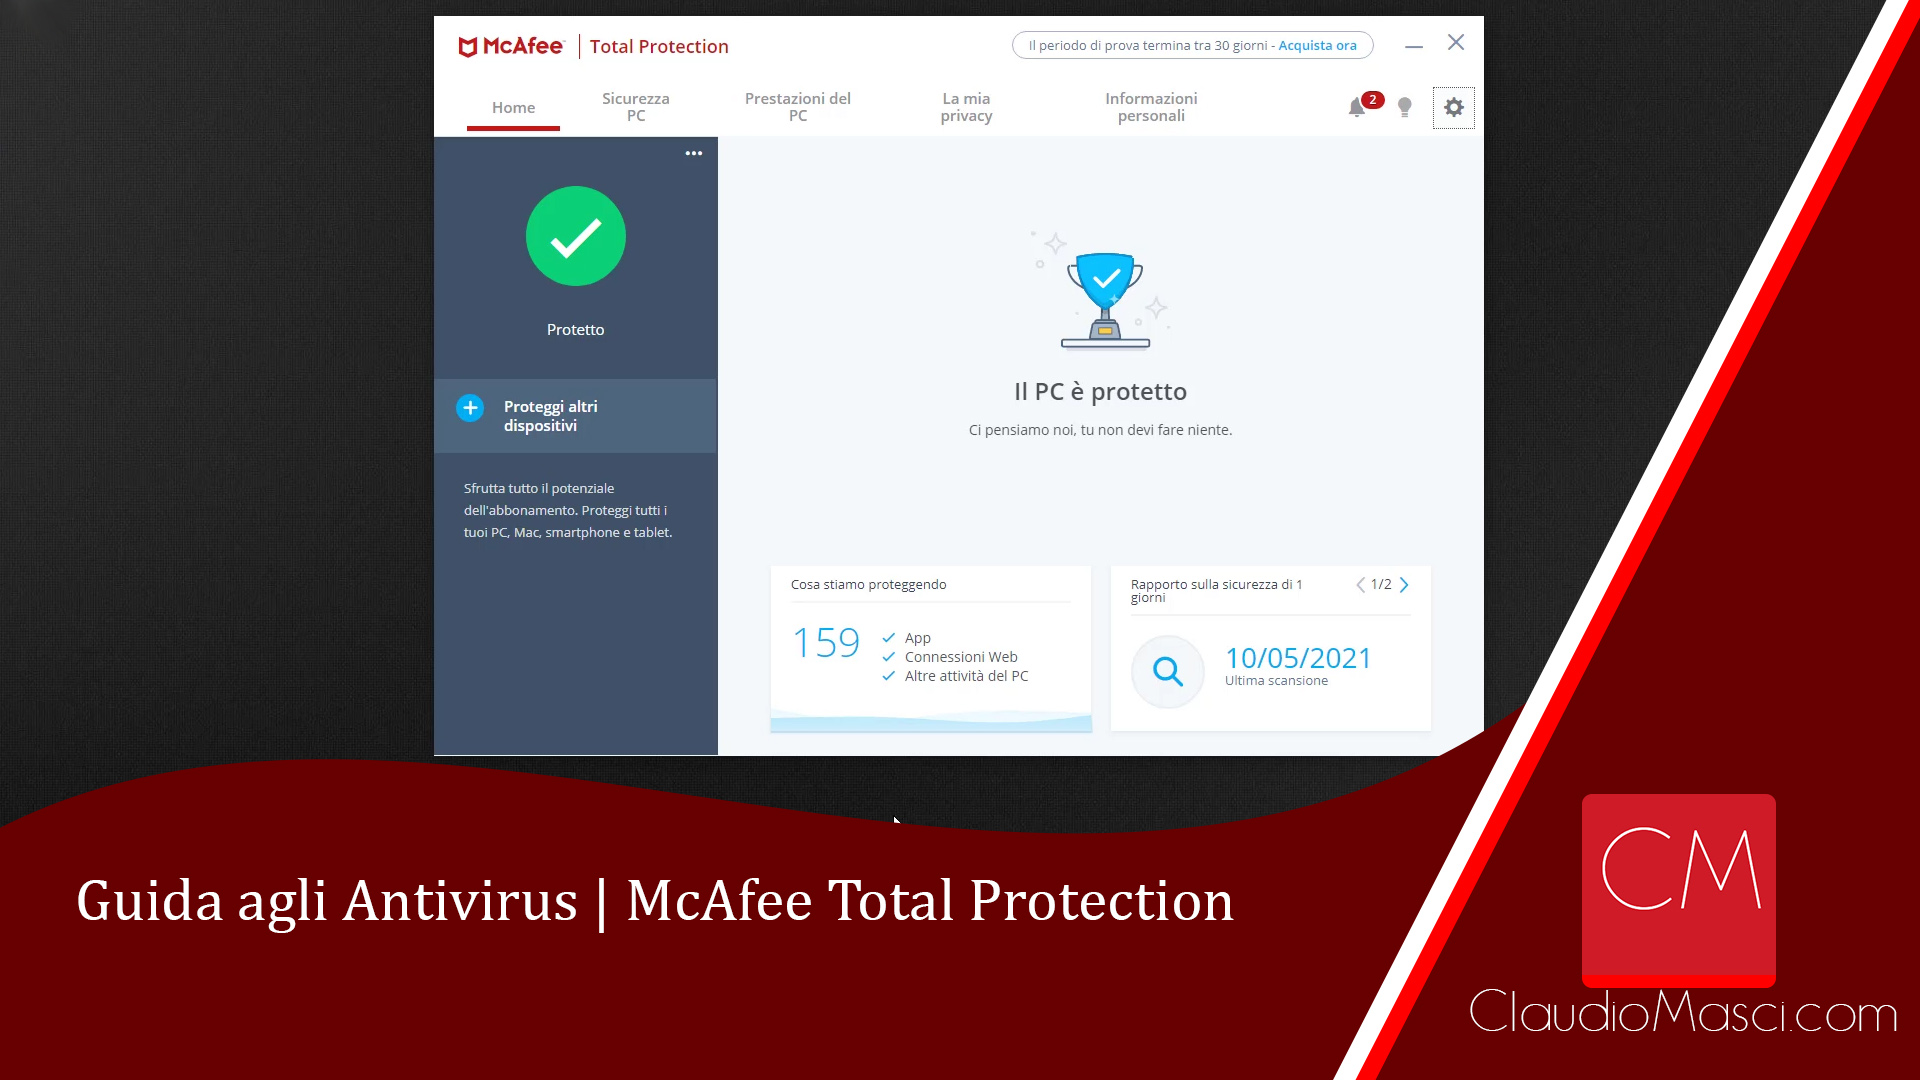 Guida agli Antivirus | McAfee Total Protection